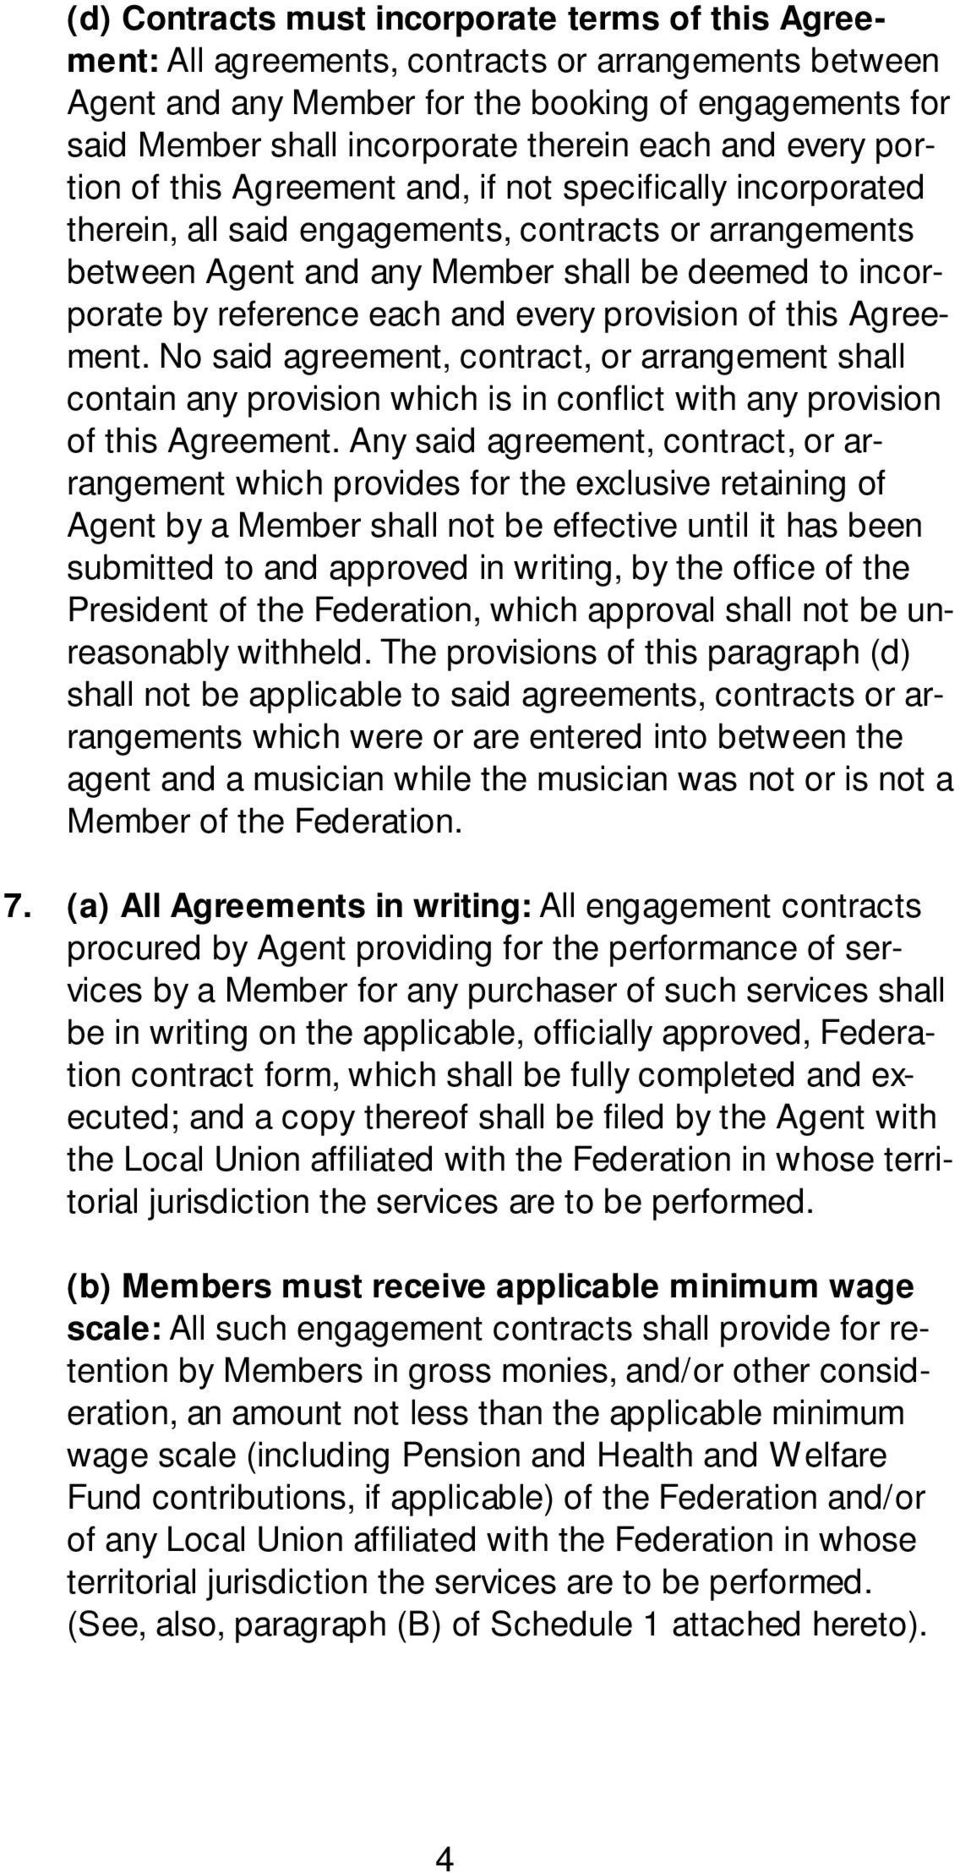 reference each and every provision of this Agreement. No said agreement, contract, or arrangement shall contain any provision which is in conflict with any provision of this Agreement.